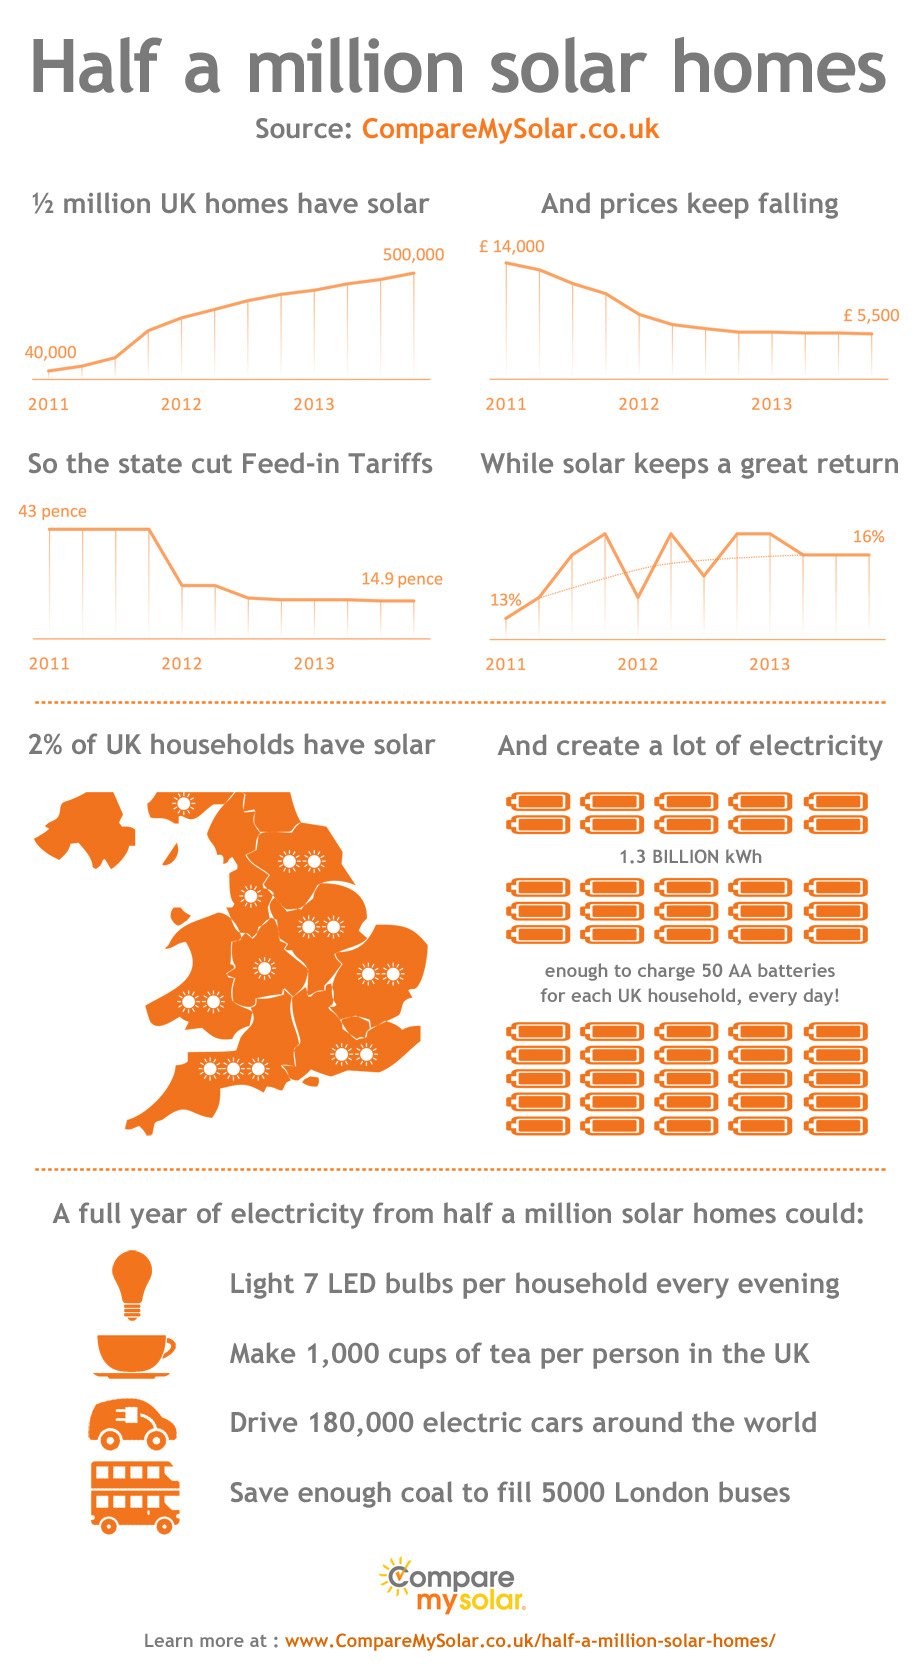 Half a million solar homes - infographic solar panels UK